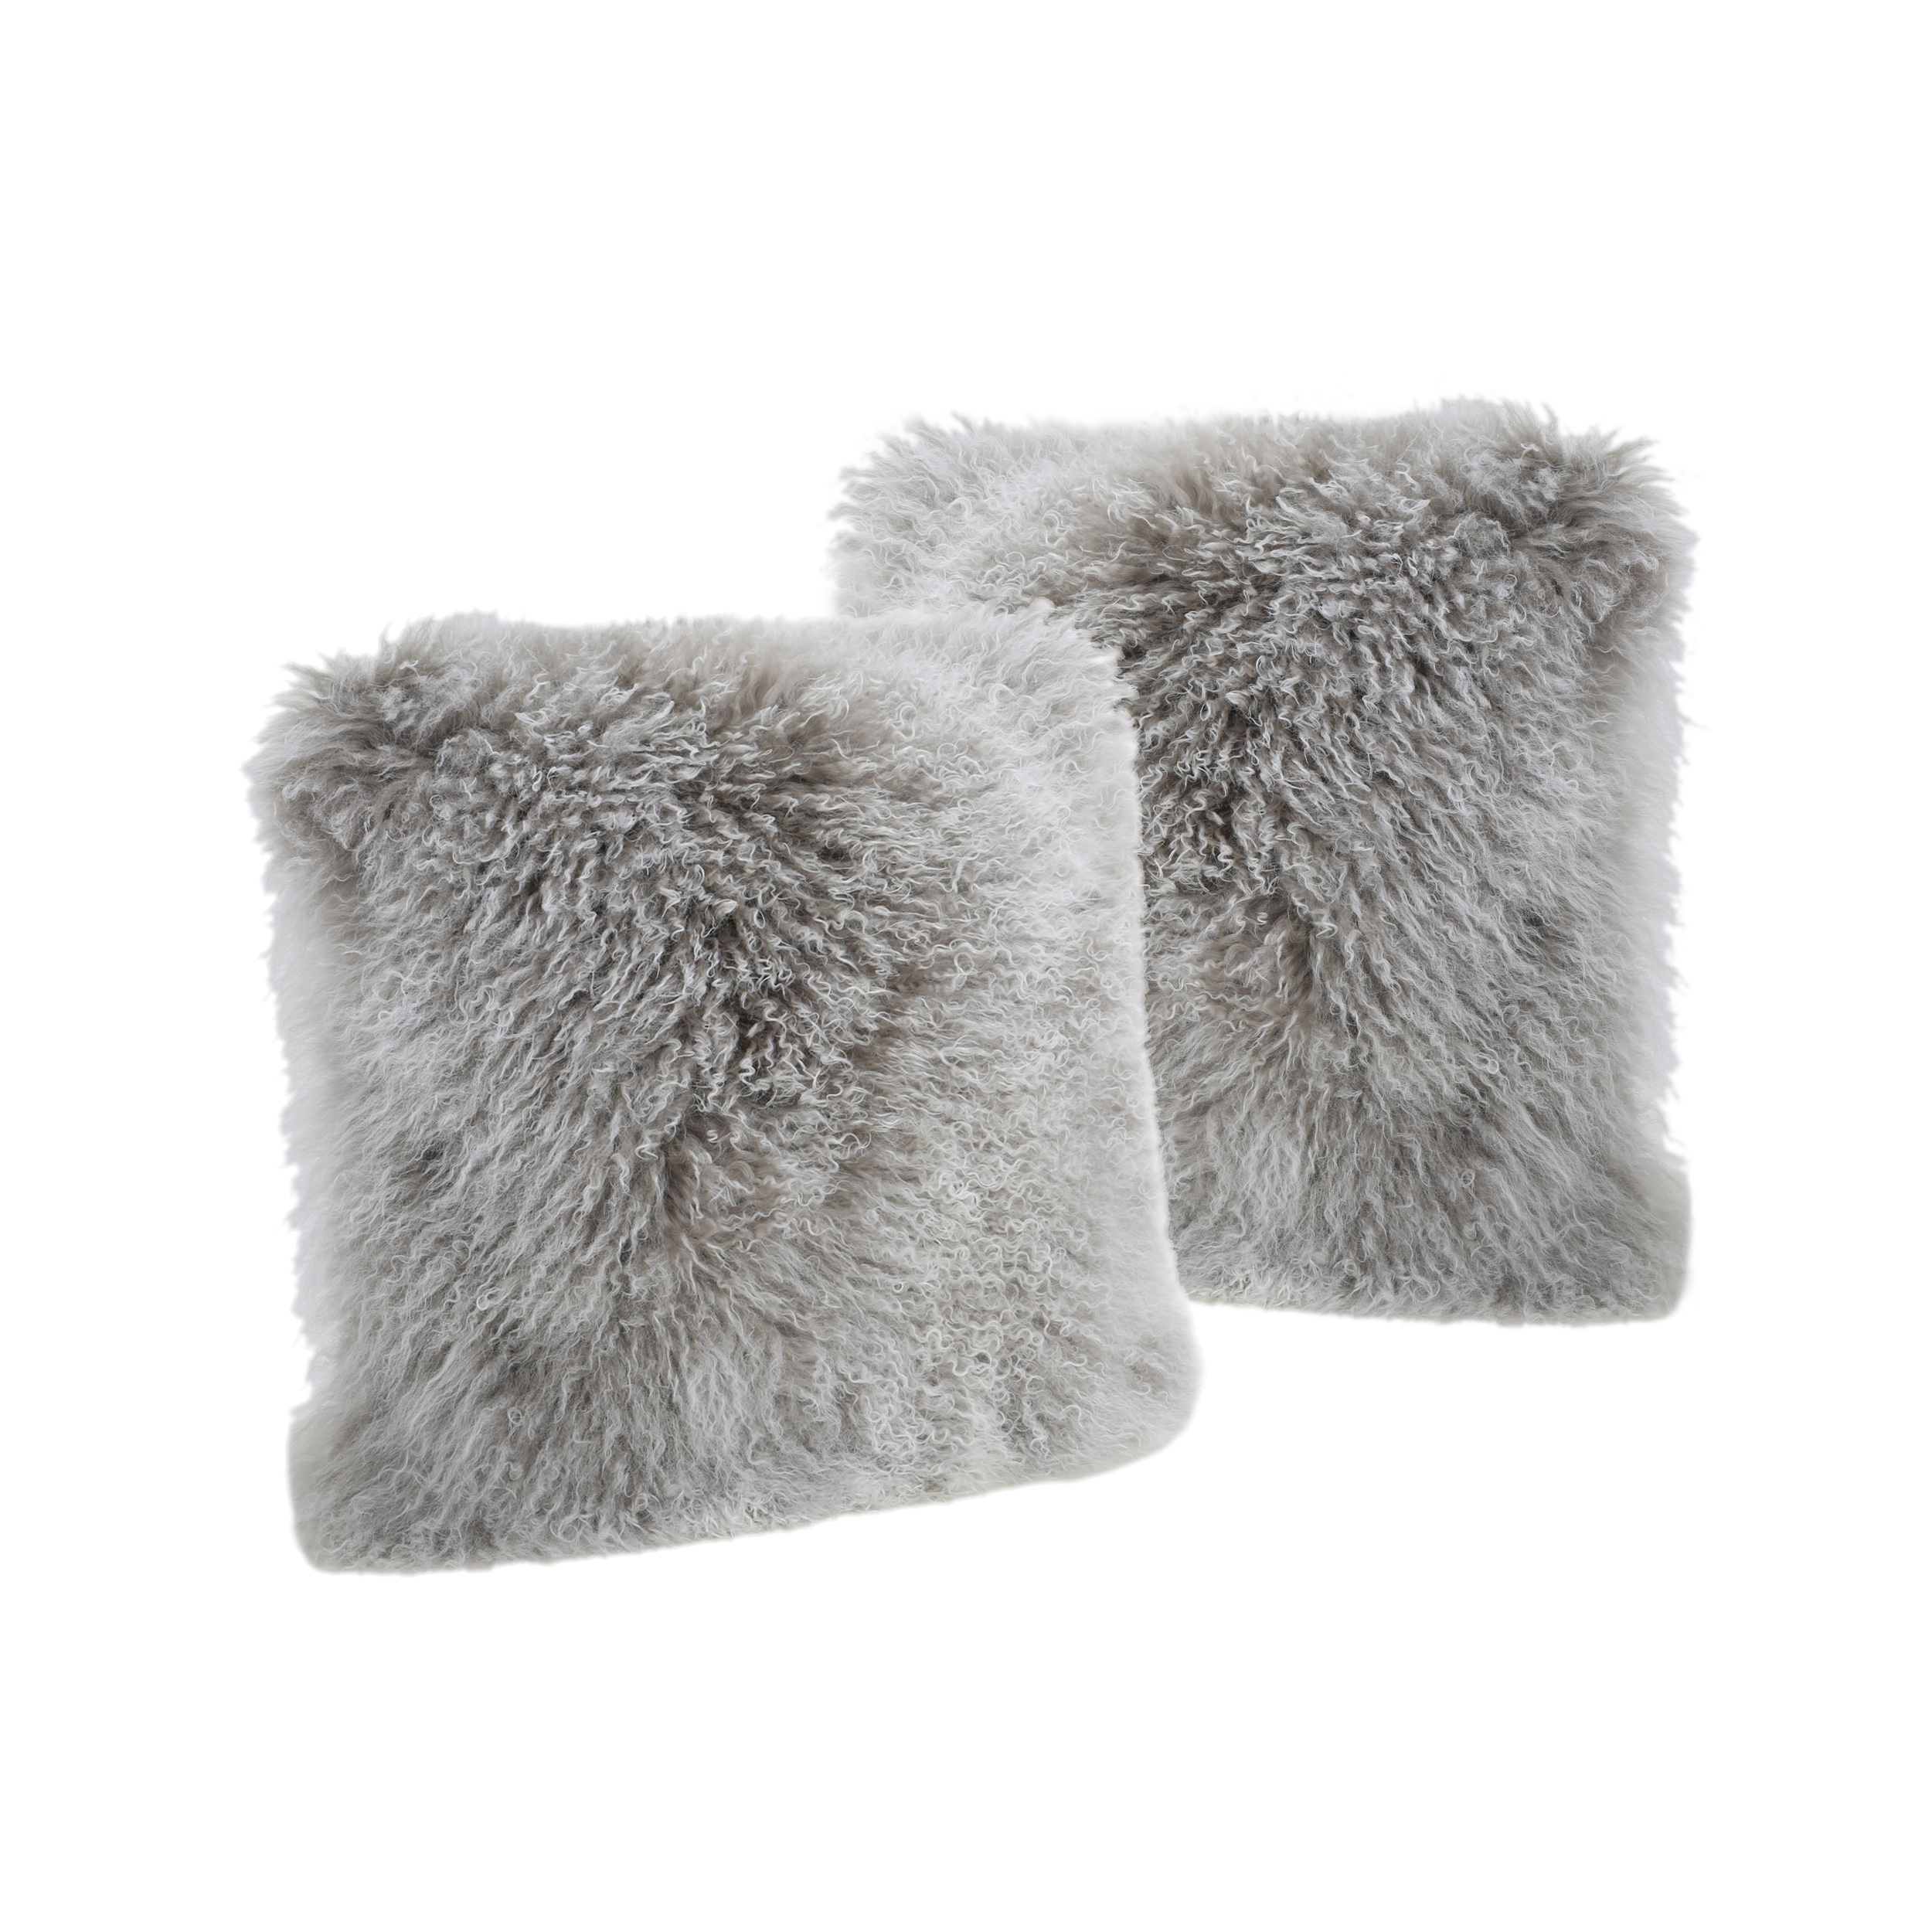 Marybelle Shaggy Lamb Fur 20 x 20 Square Pillows, Set of 2, Stone Grey